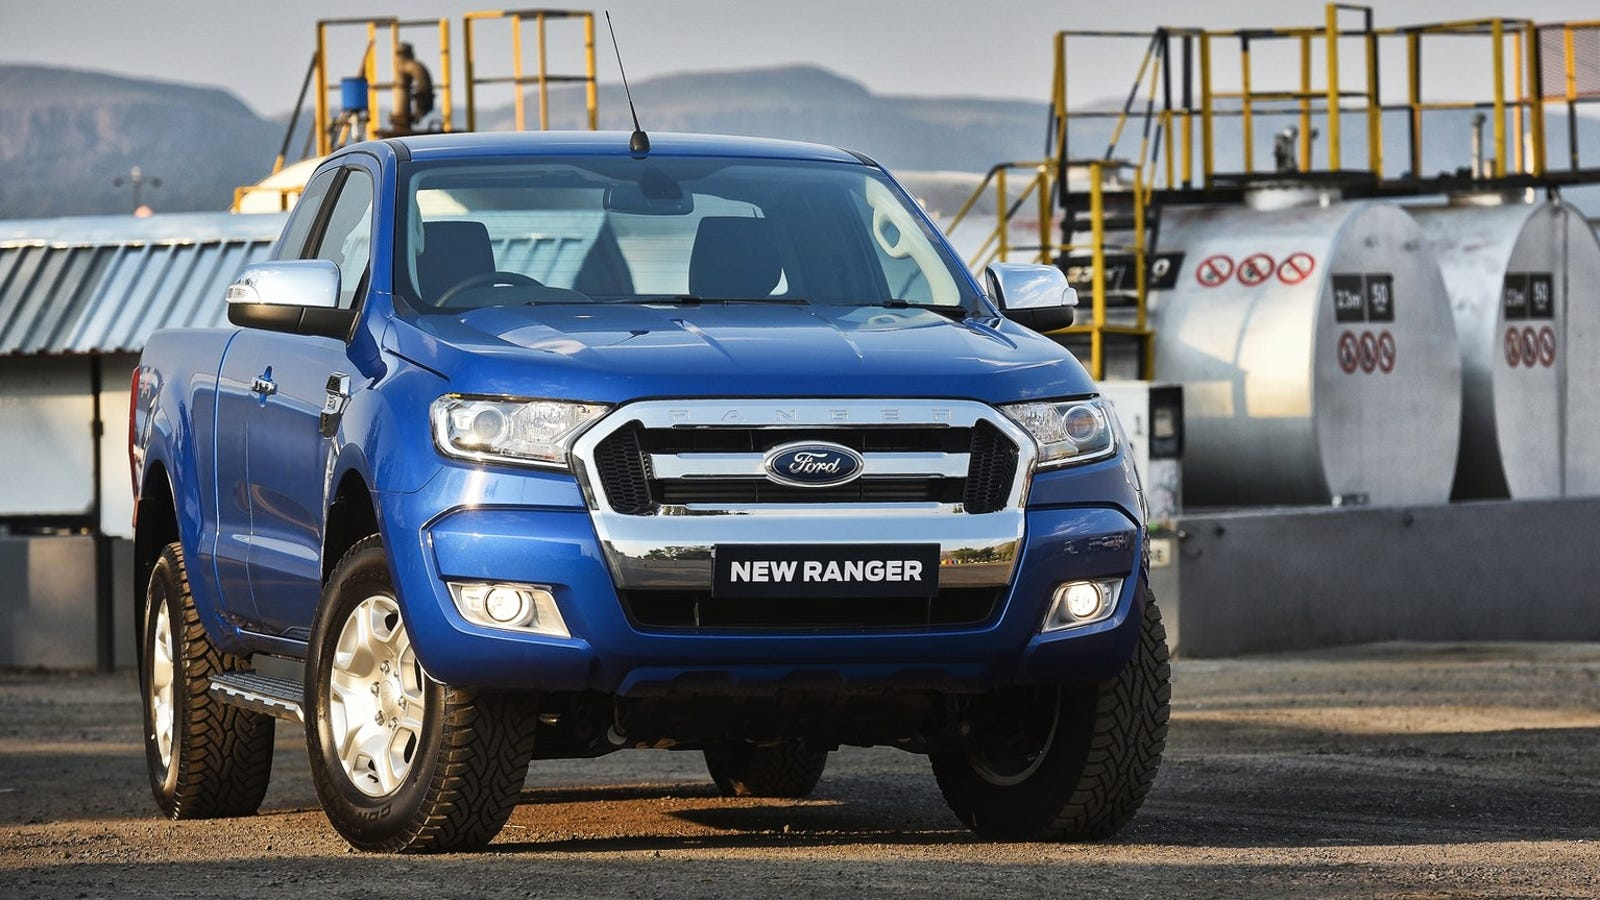 America S 2019 Ford Ranger Won T Look Like The New One You Ve Seen